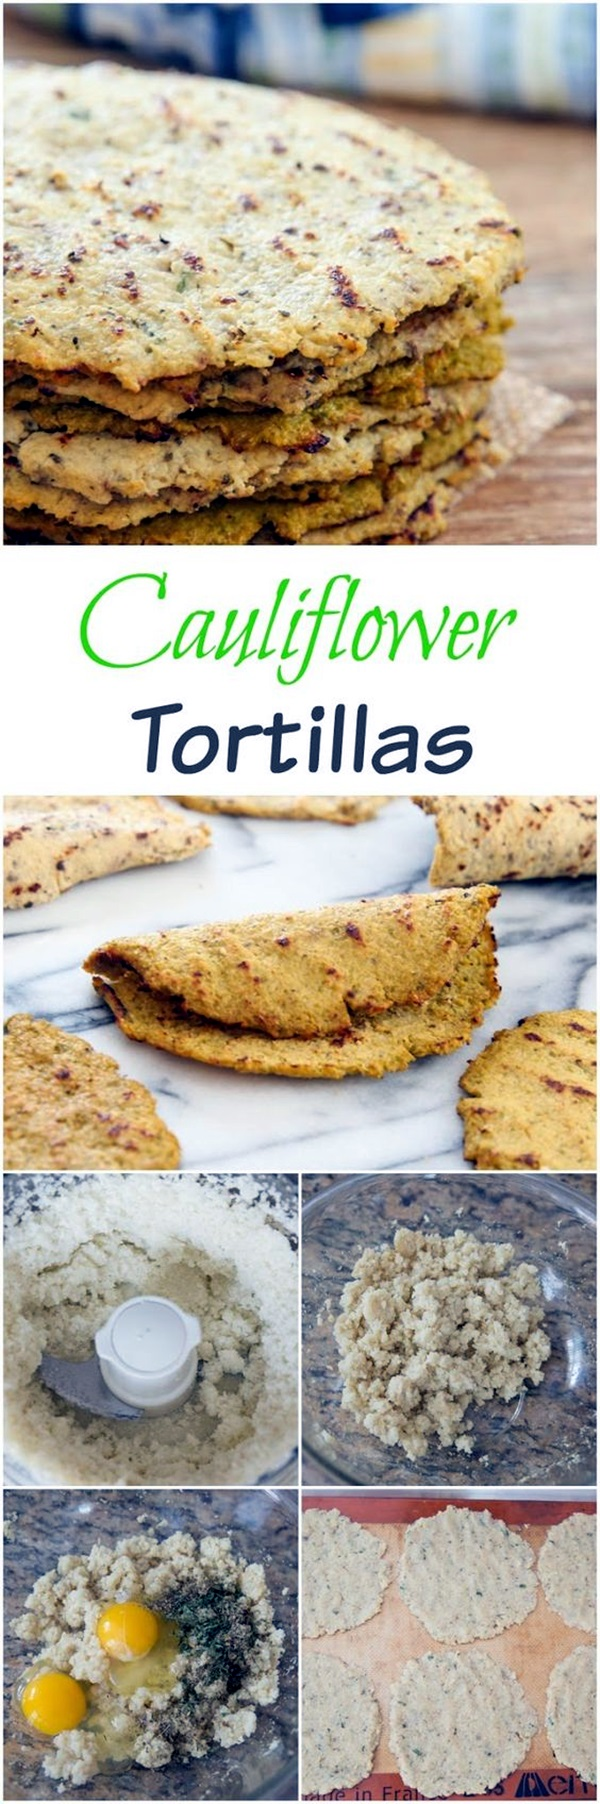 Ways To Use Cauliflower As A Low-Carb Replacement (6)